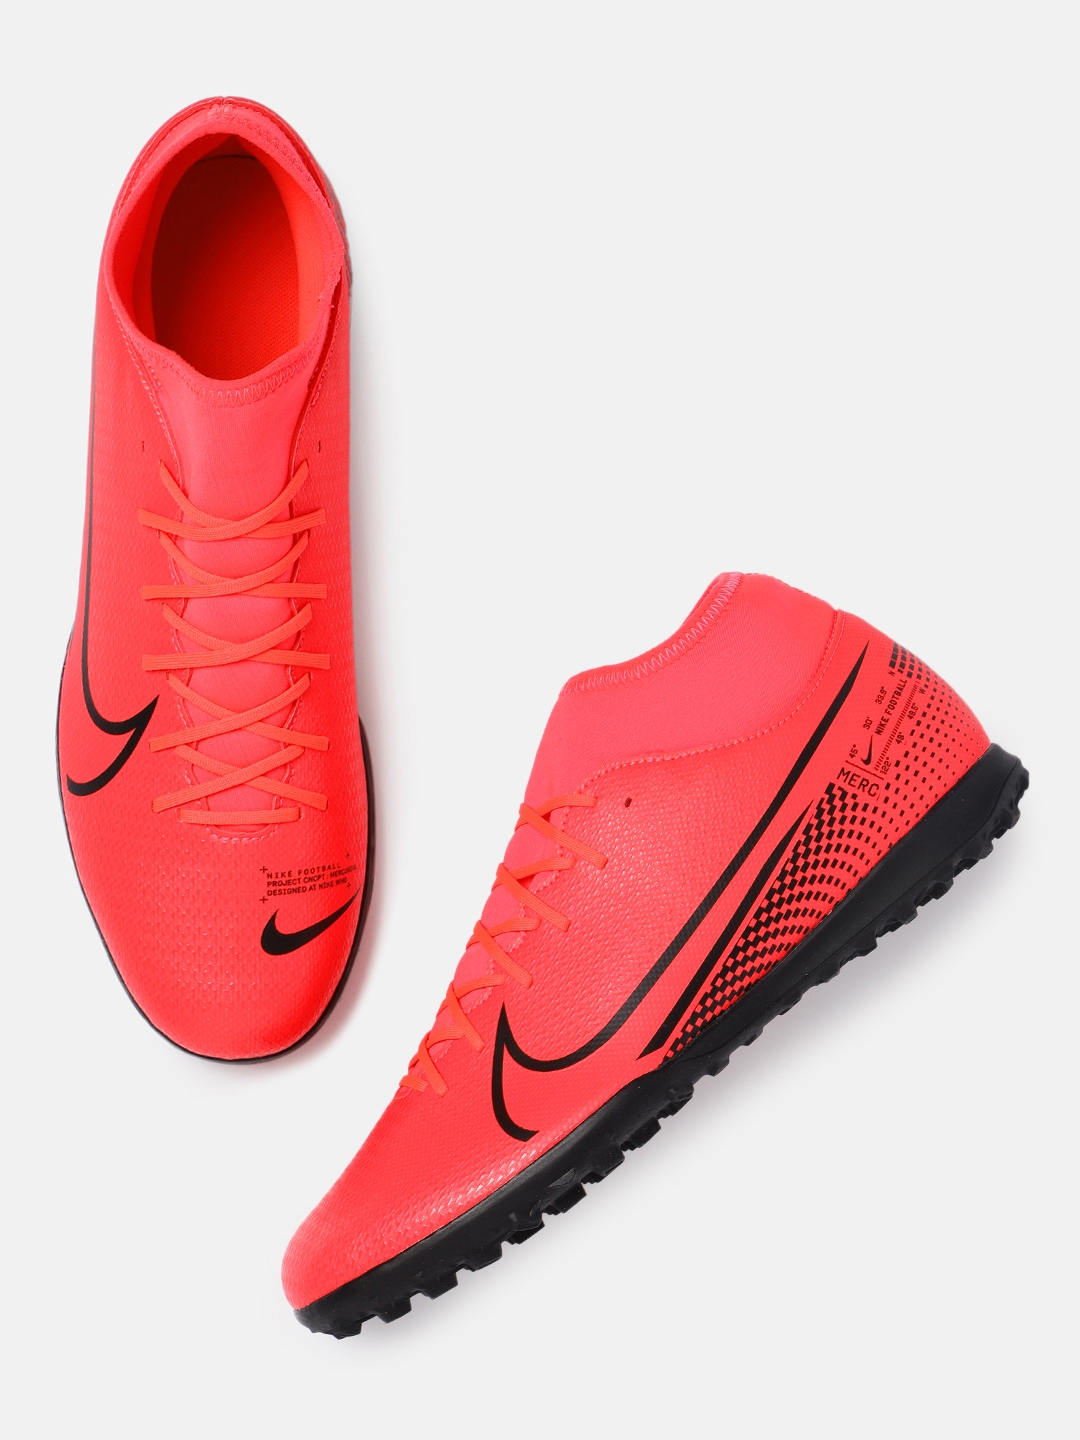 castillo Estado mecánico  Buy Nike Unisex Red SUPERFLY 7 CLUB TF Football Shoes - Sports Shoes for  Unisex 11045480 | Myntra